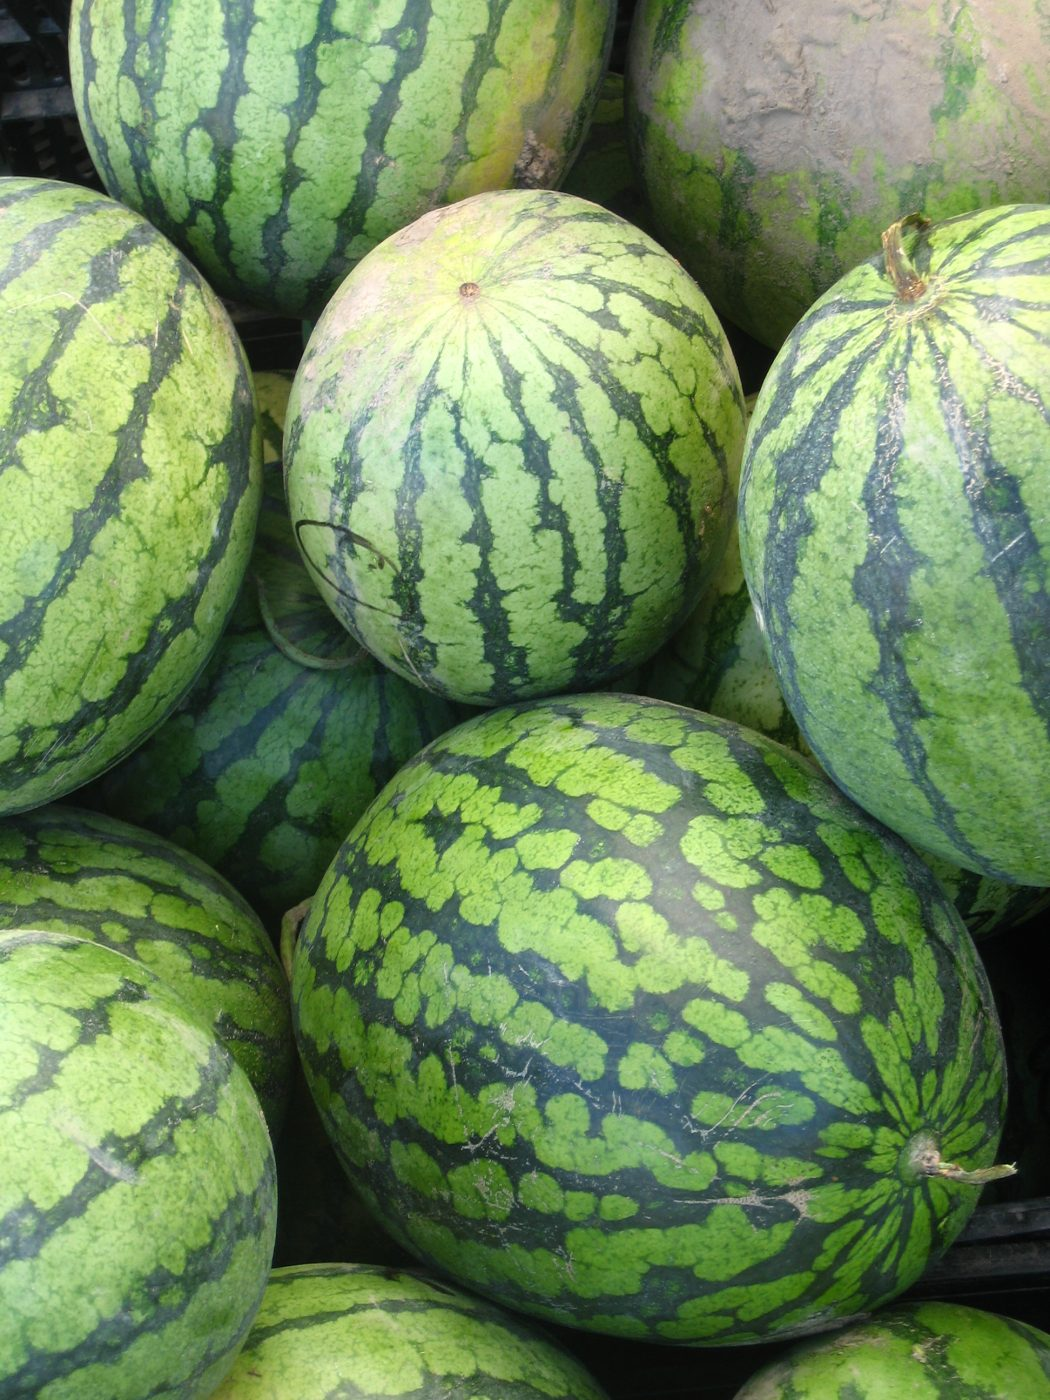 watermelon-watermelons-for-sale-2-1326352-freeimages-by-alistair-williamson